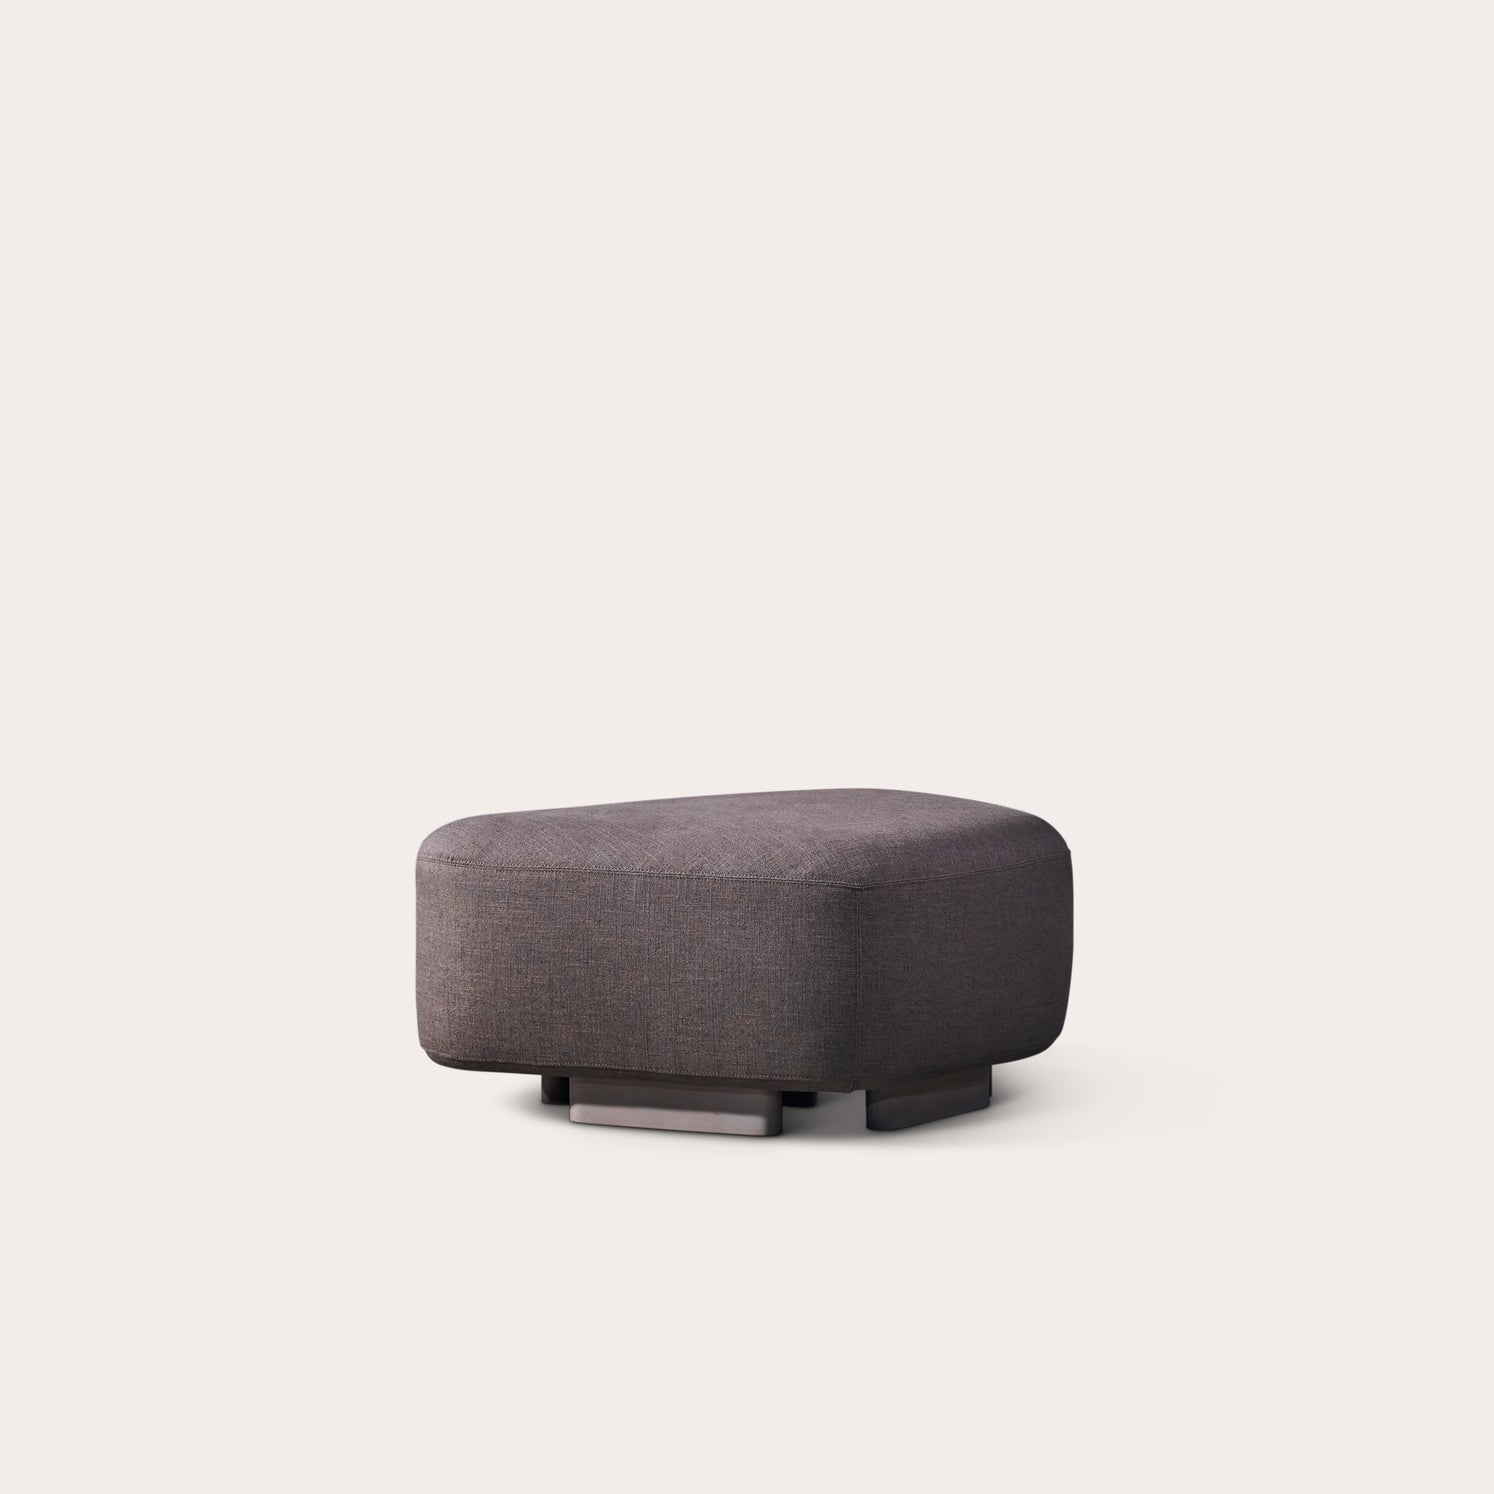 Noor Small Ottomans Piet Boon Designer Furniture Sku: 784-240-10095